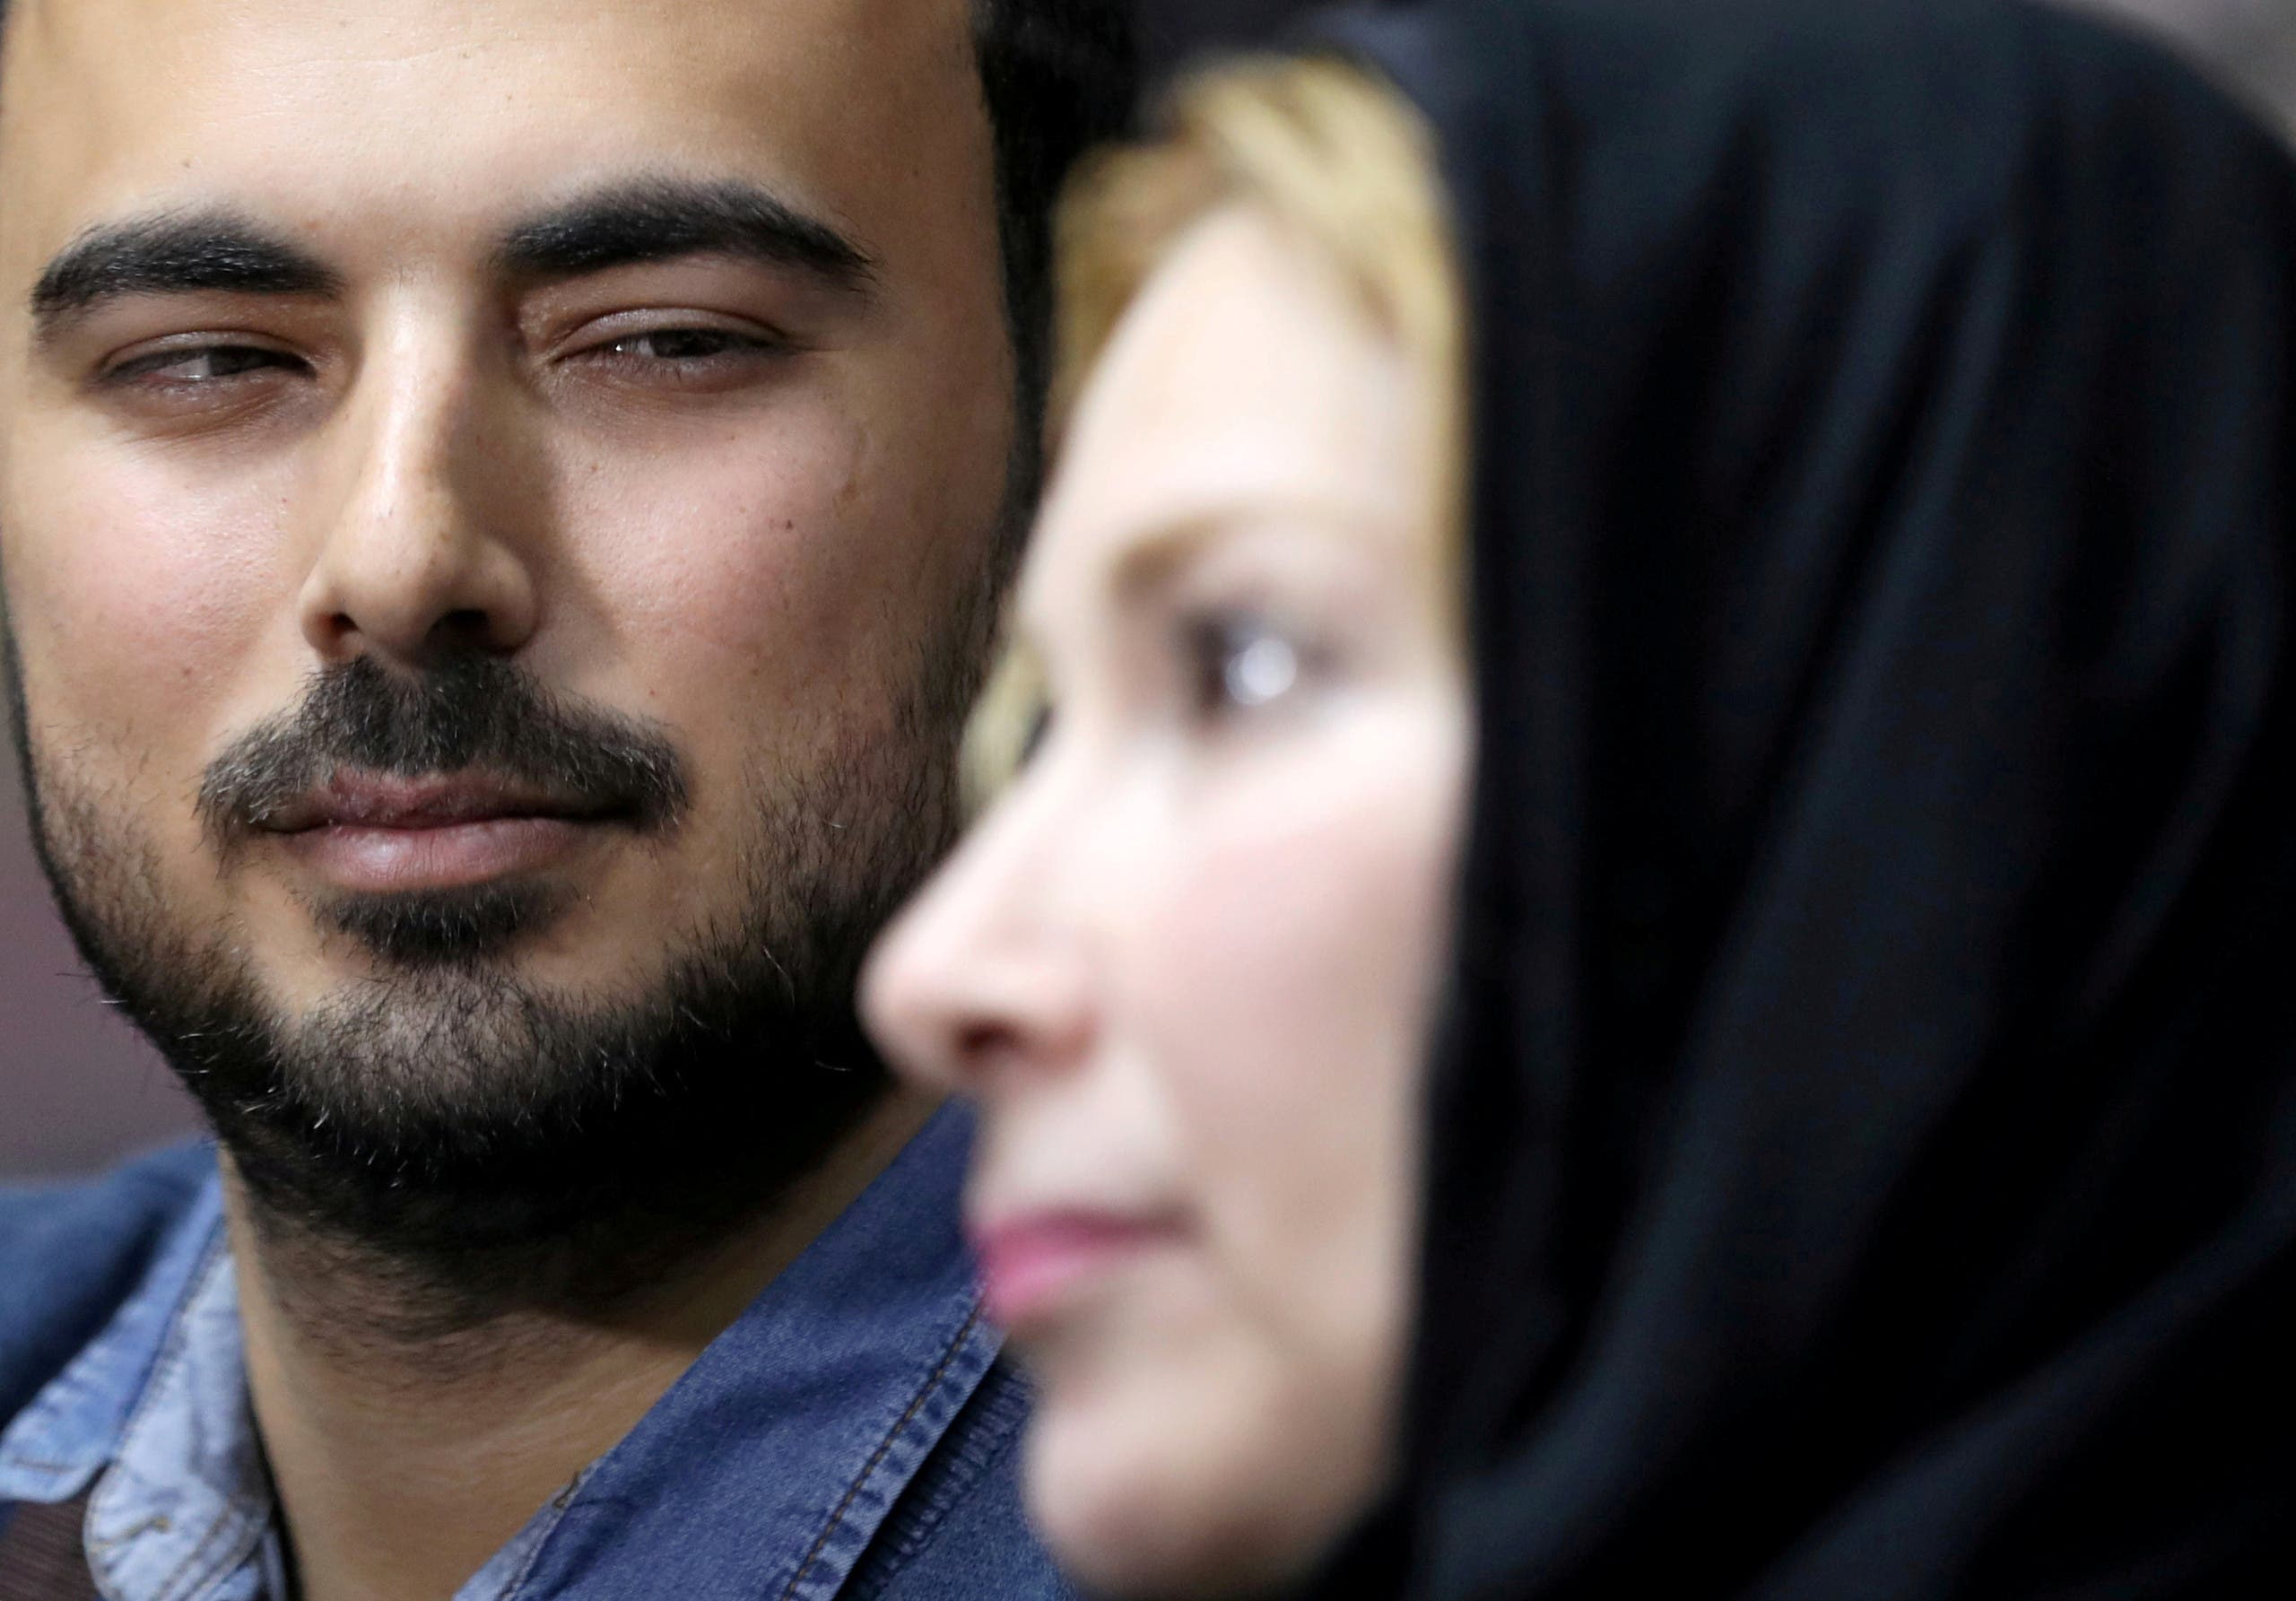 Palestinian journalist, Amjad Yaghi, hugs his mother, Nevine Zouheir, after 20 years of separation, in Banha, Egypt December 2, 2019. Picture taken December 2, 2019. REUTERS